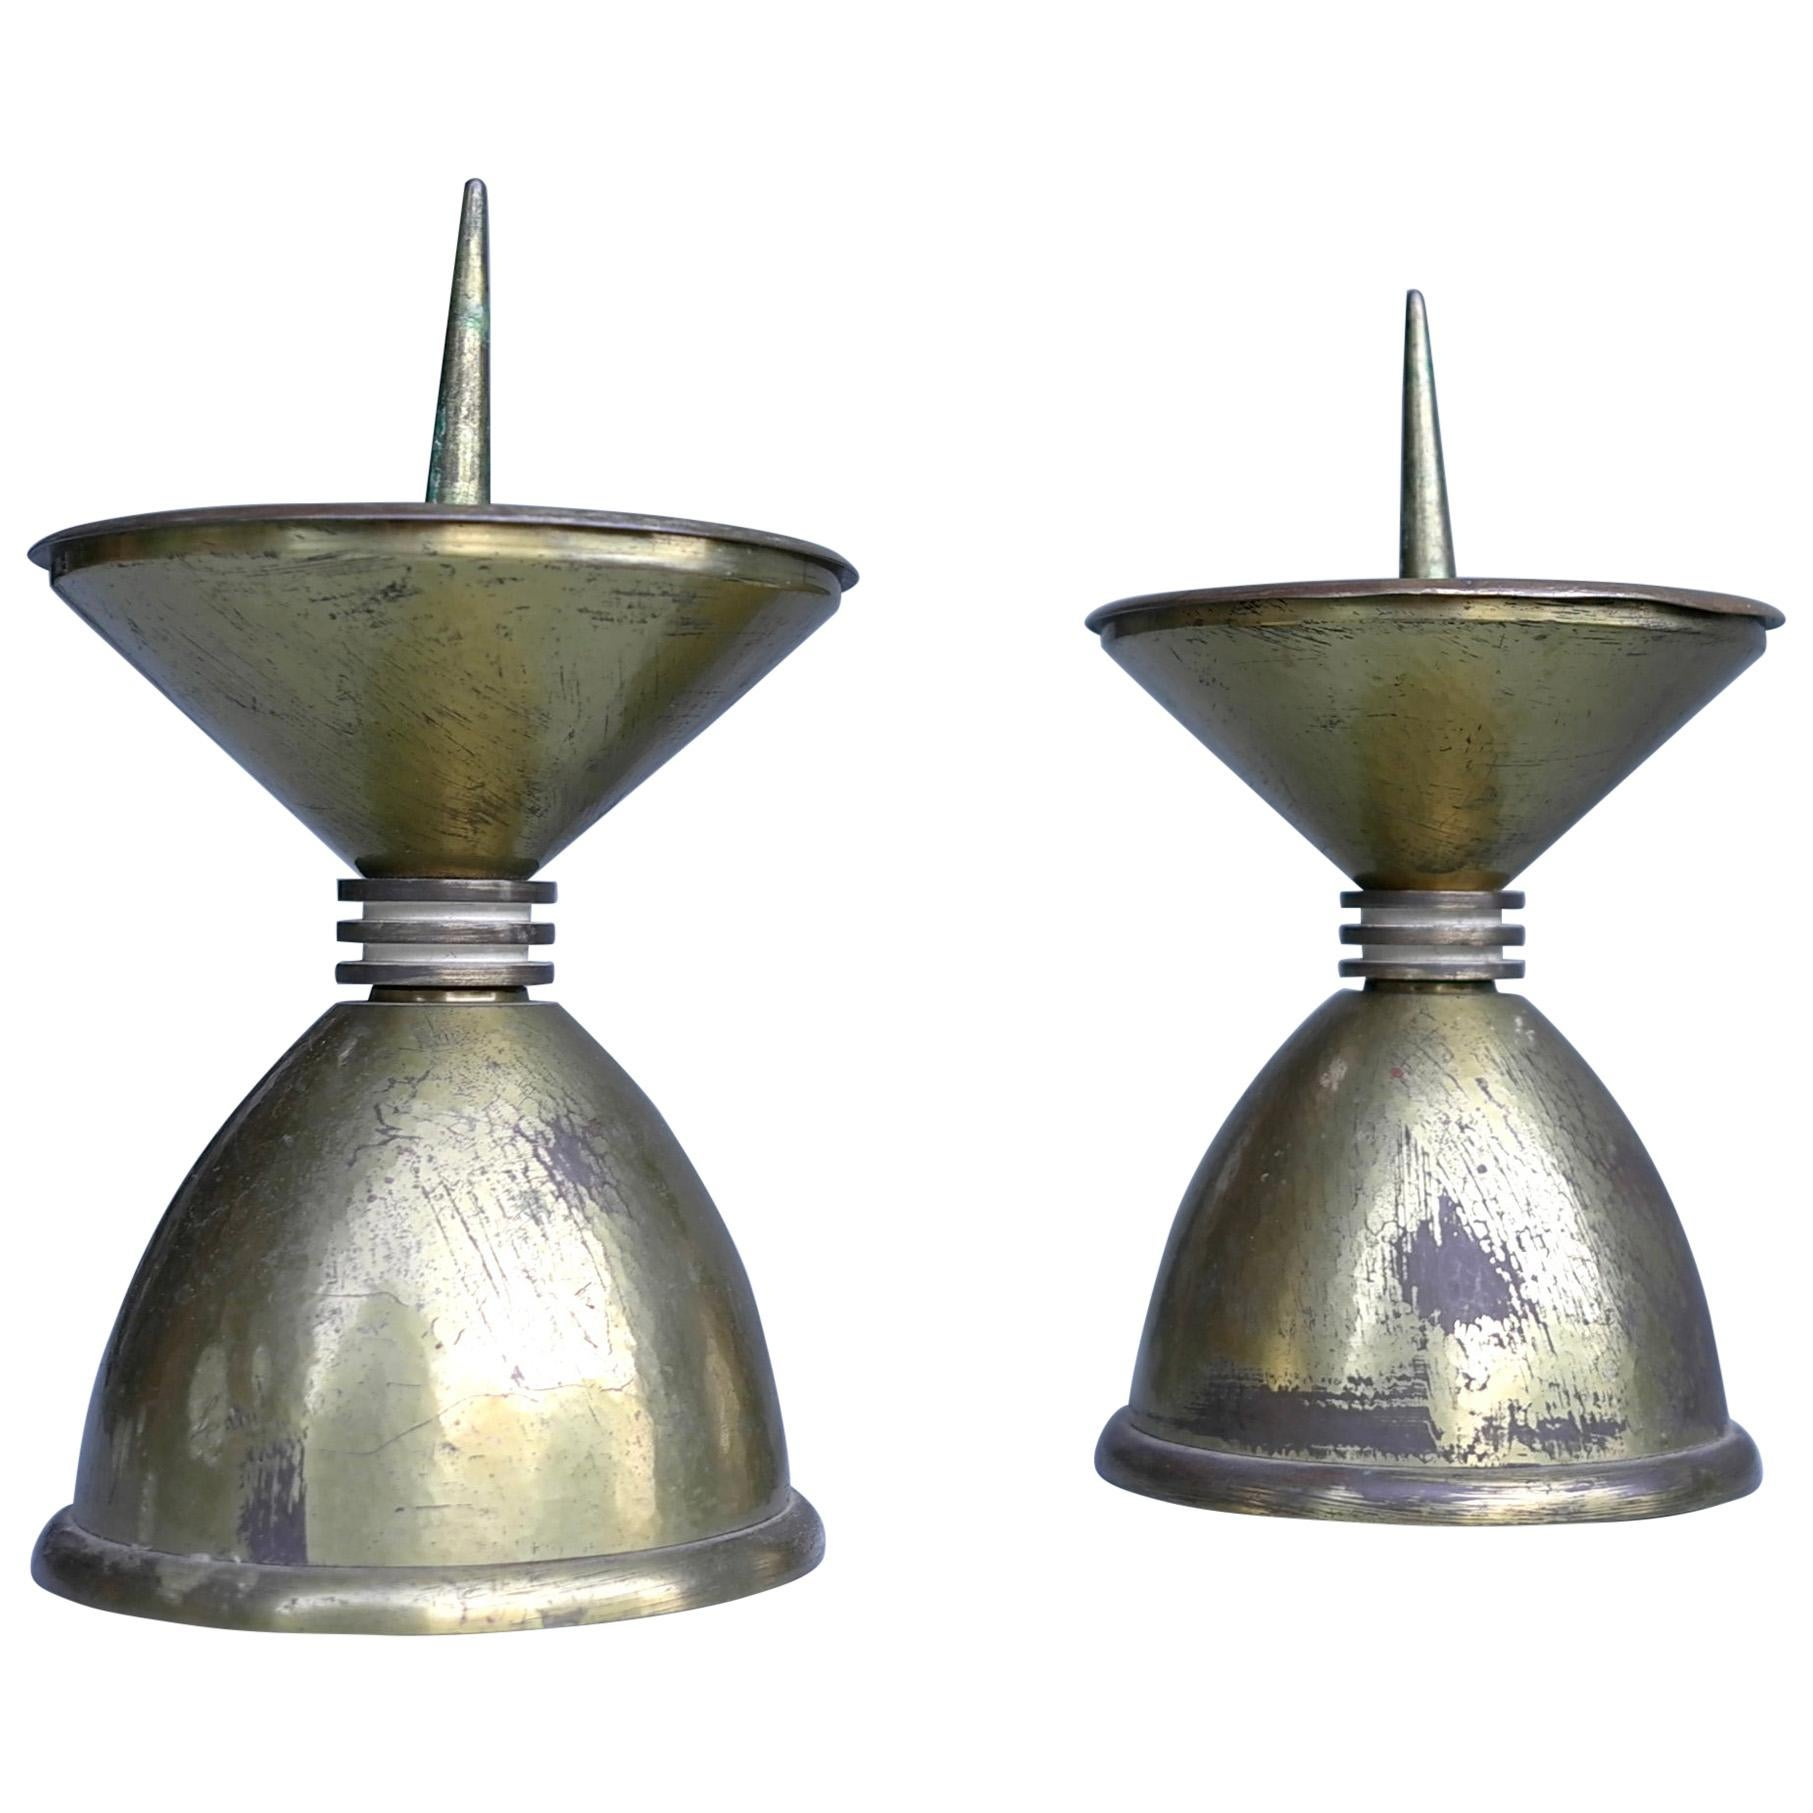 Pair of Large Art Deco Bronze and Brass Candlesticks, France, 1930s